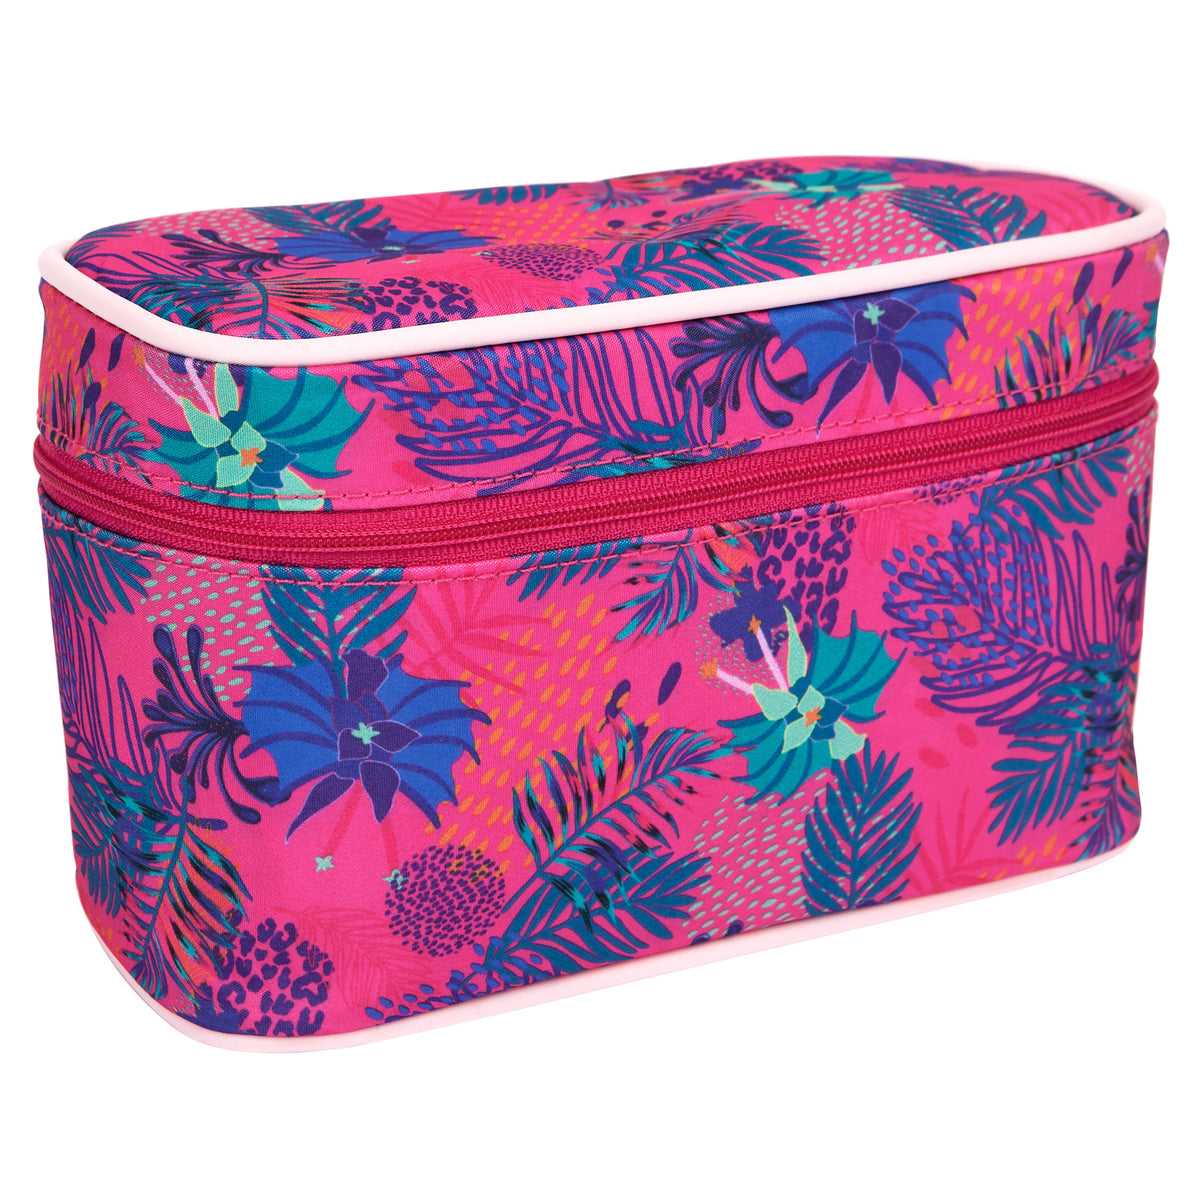 Sunnylife | Travel Bag Set Large | Electric Bloom